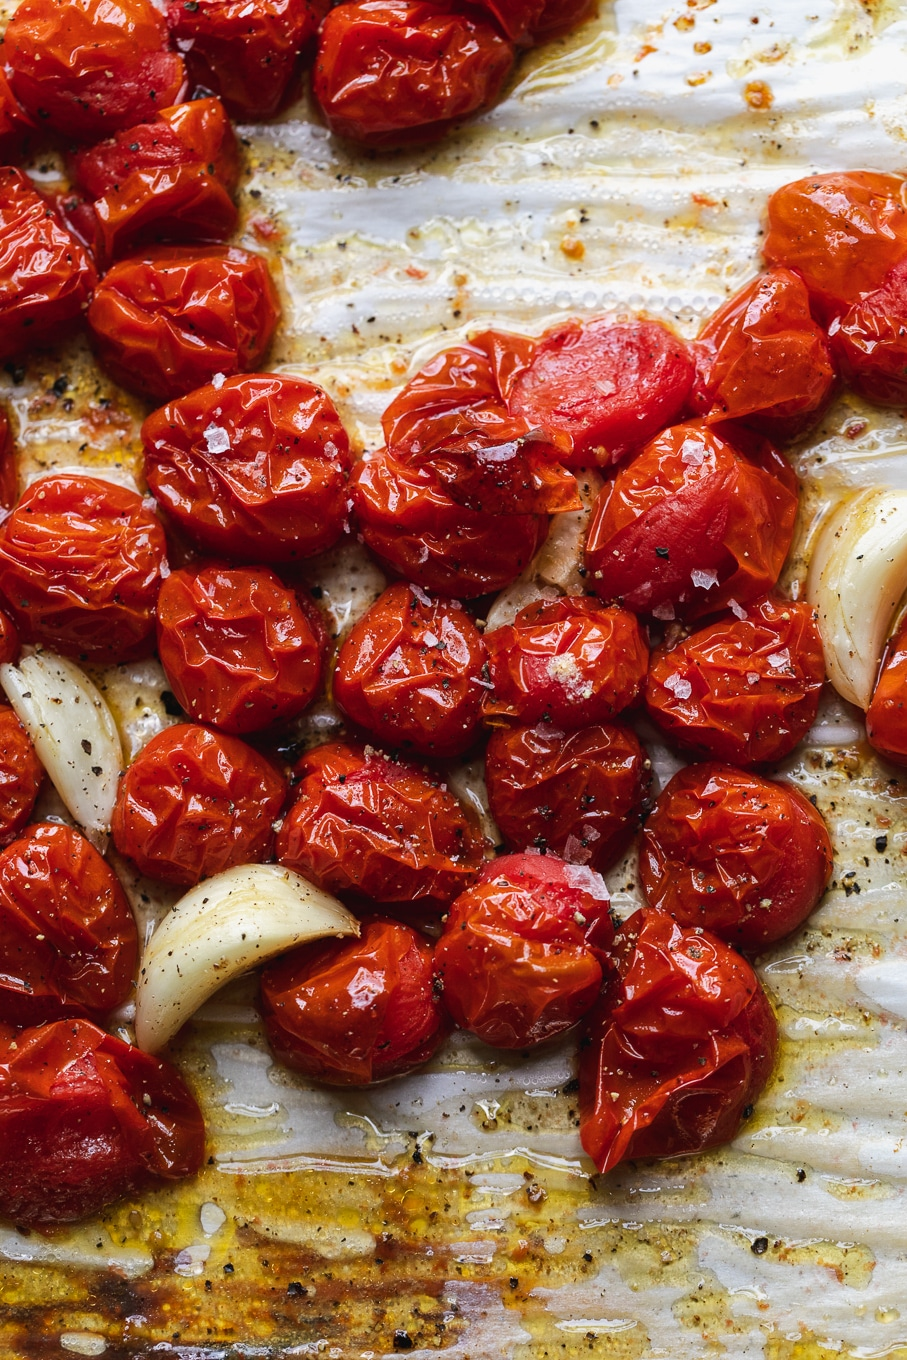 Overhead close up shot of roasted tomatoes and garlic cloves